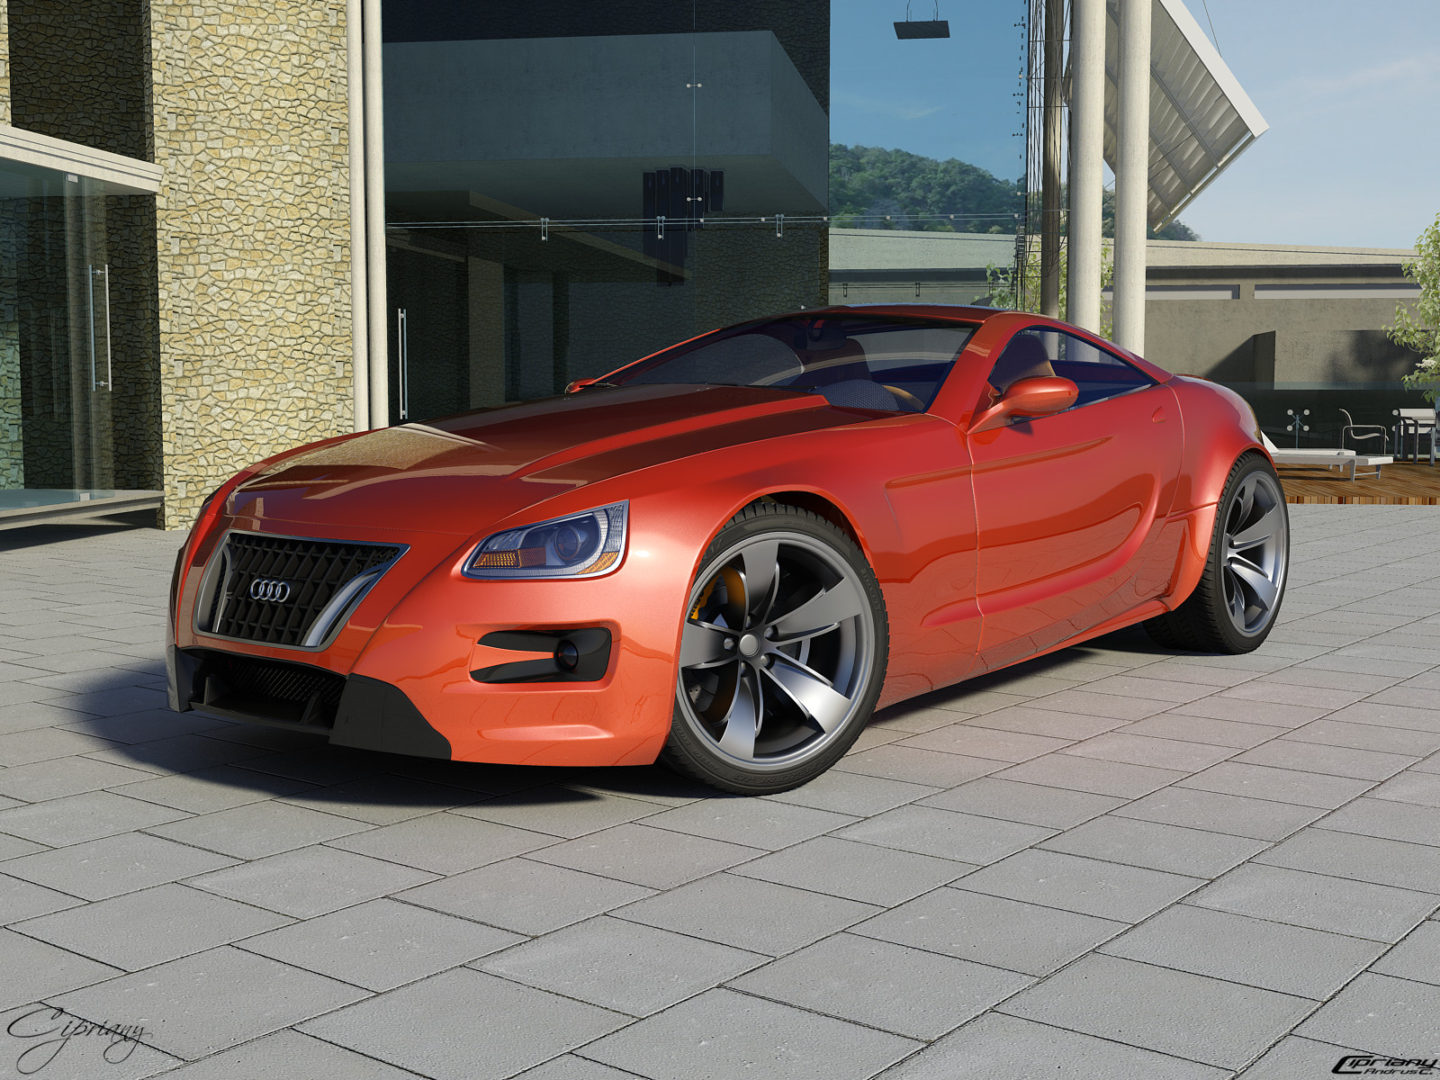 Audi_aQa_concept_2_by_cipriany